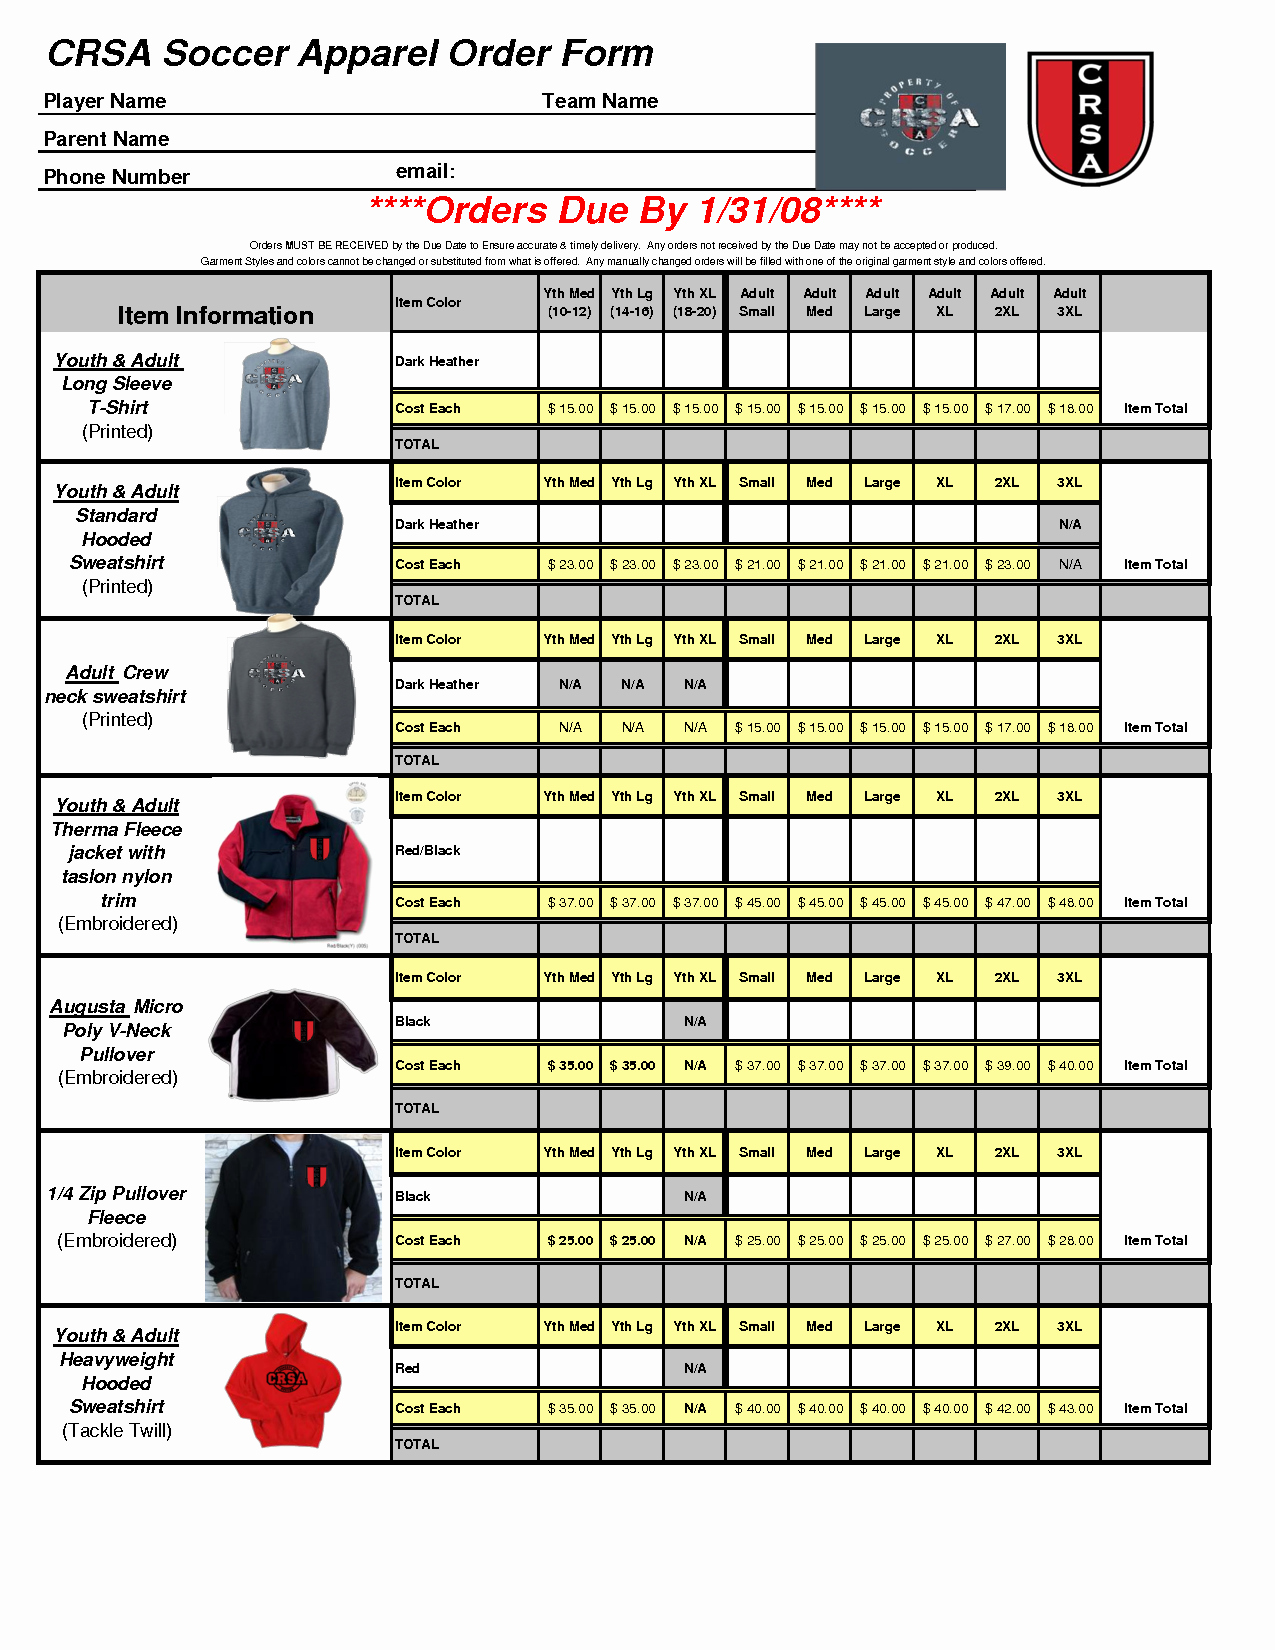 Apparel order form Template Excel Inspirational Best S Of Microsoft order form Template Work order form Template Word T Shirt order form